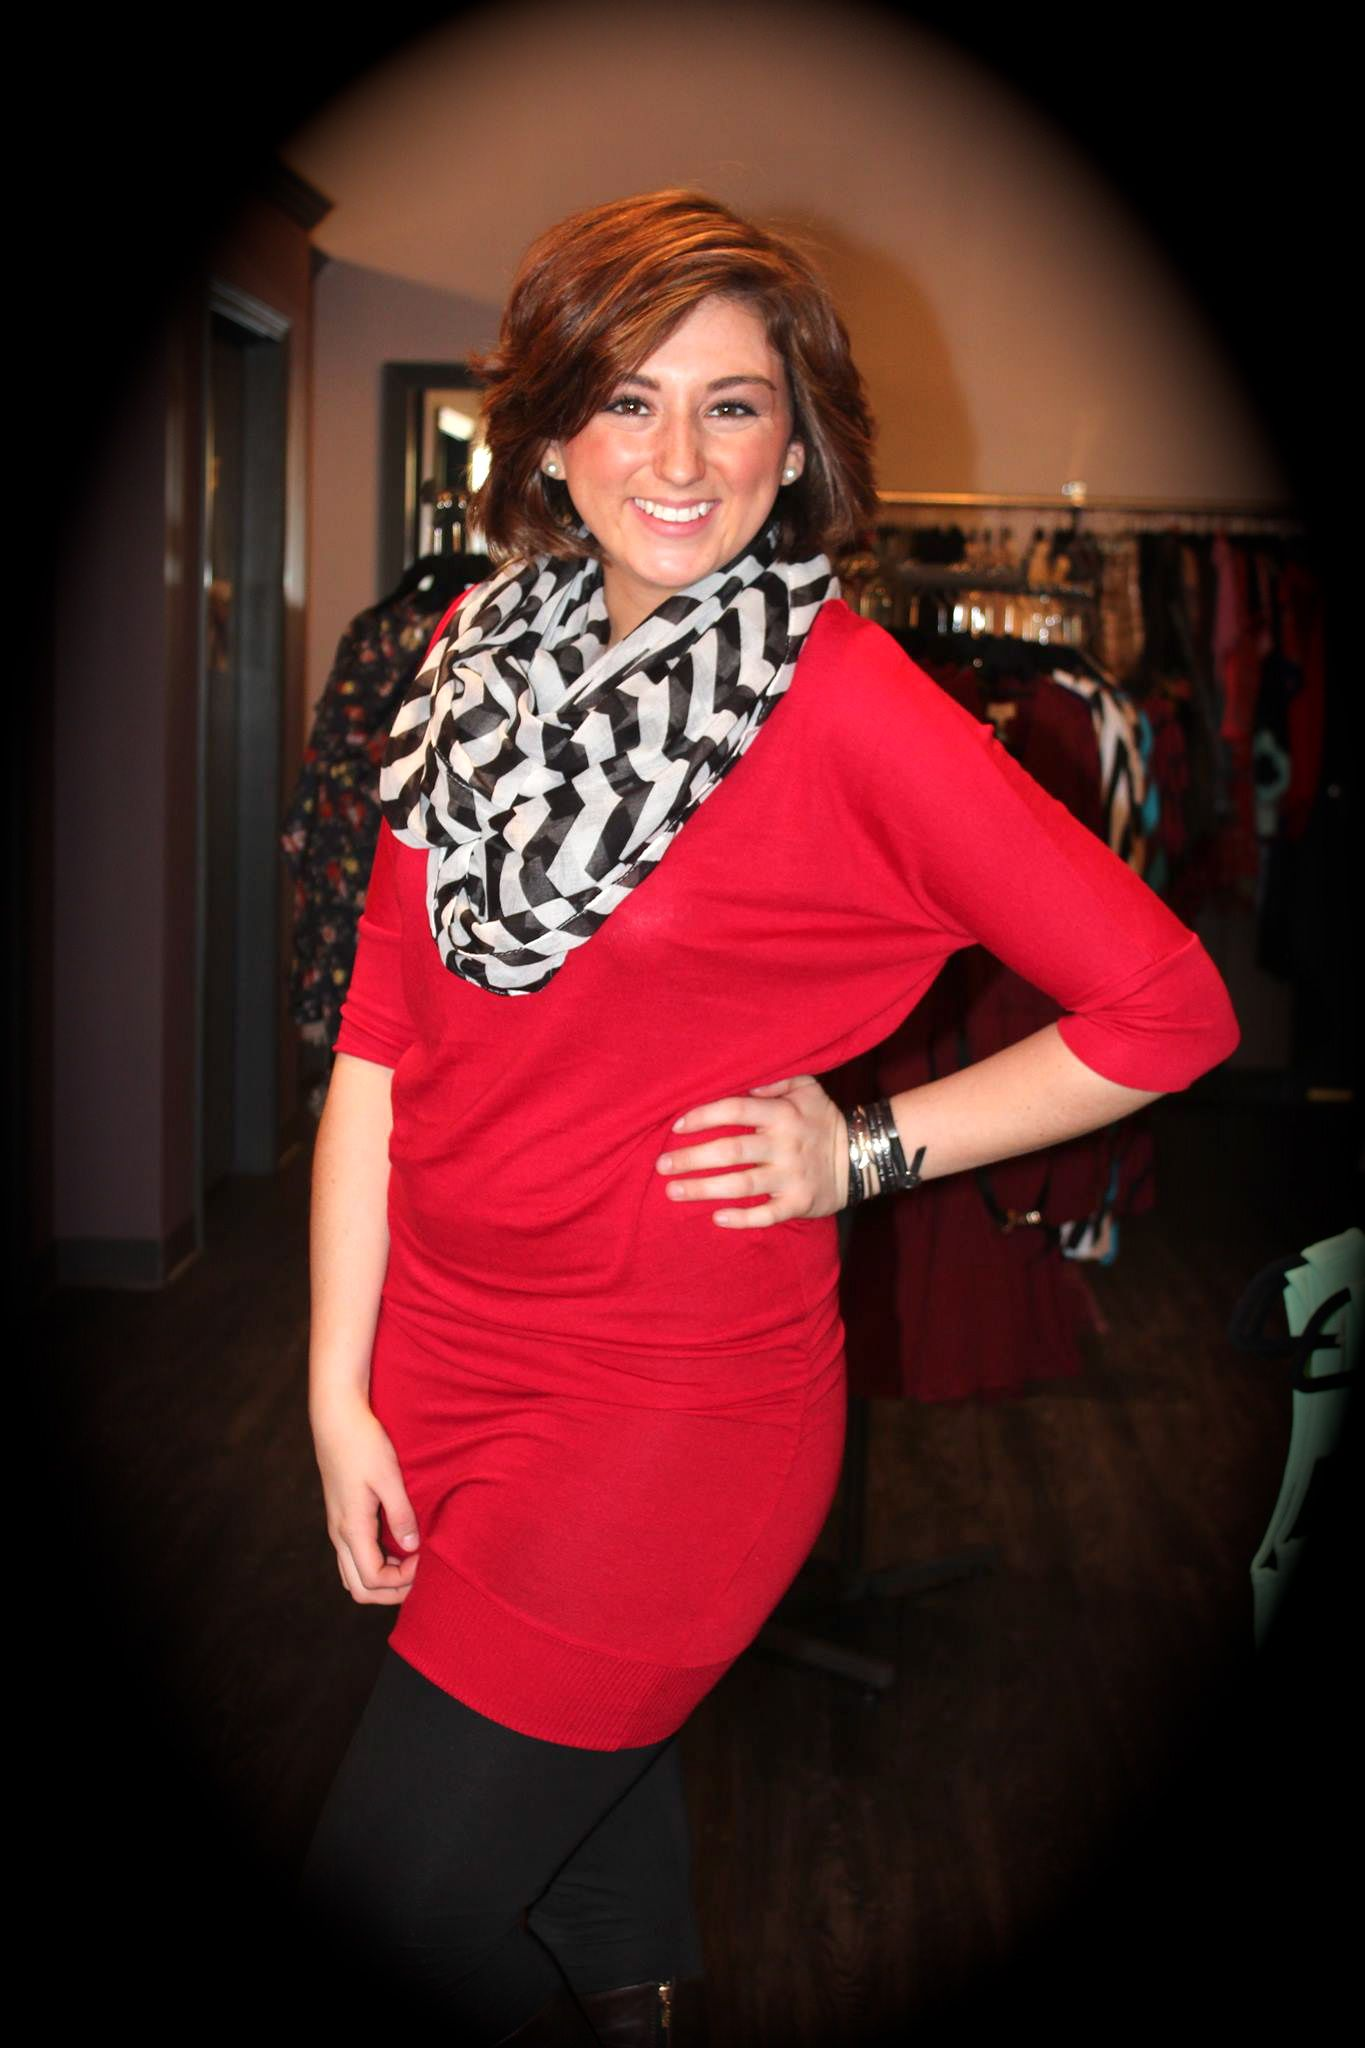 Red Tunic Sweater - $20 Black and white chevron scarf - $12 call ...